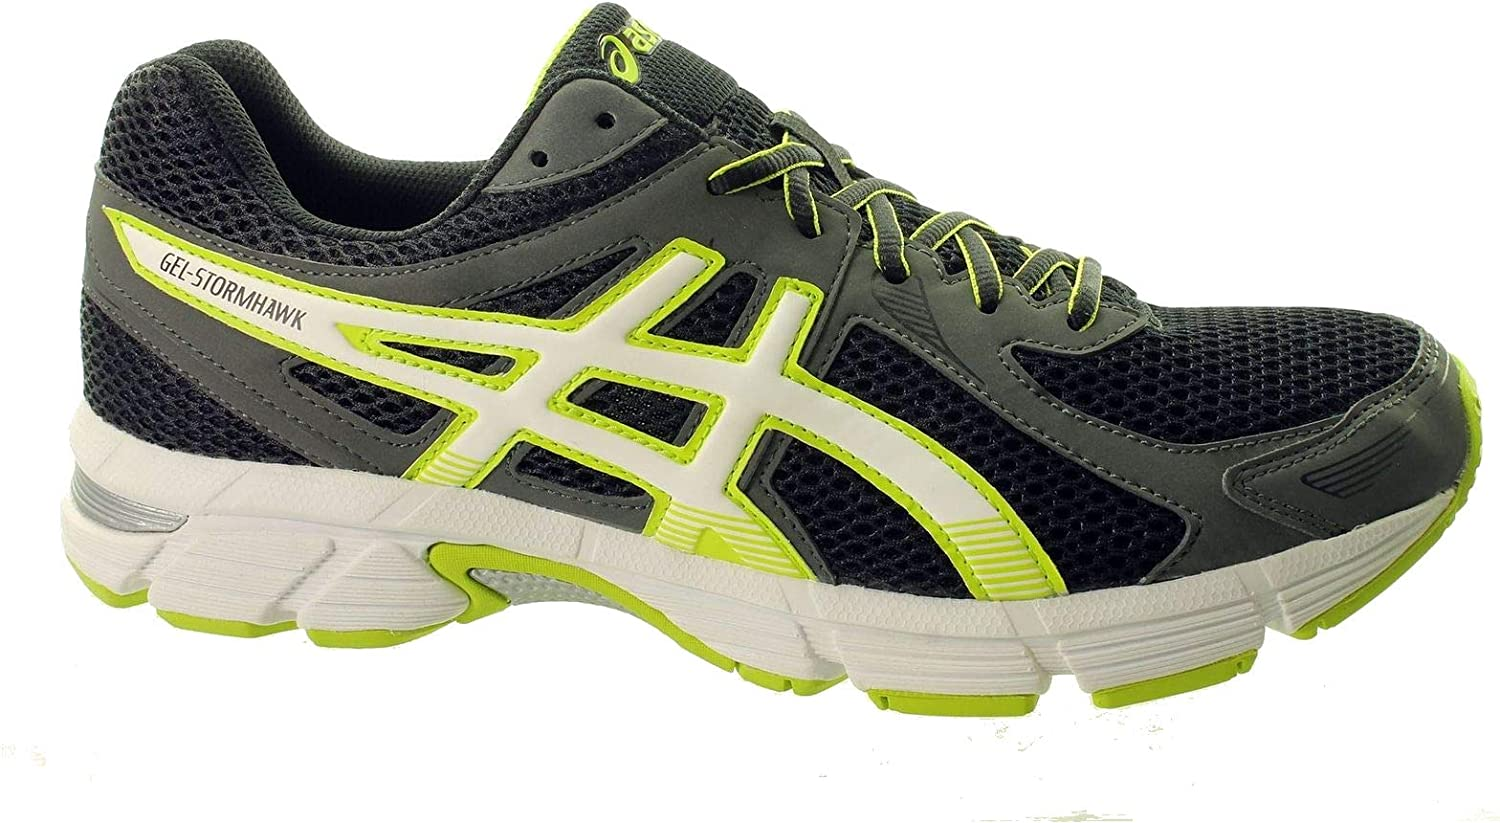 Dedos de los pies análisis sorpresa  ASICS Gel Stormhawk T41VQ-9005 Mens Trainers UK 6 Gel Stormhawk T41VQ-9005  Mens Trainers UK 6 - Black/White/Lime, UK6: Amazon.co.uk: Shoes & Bags